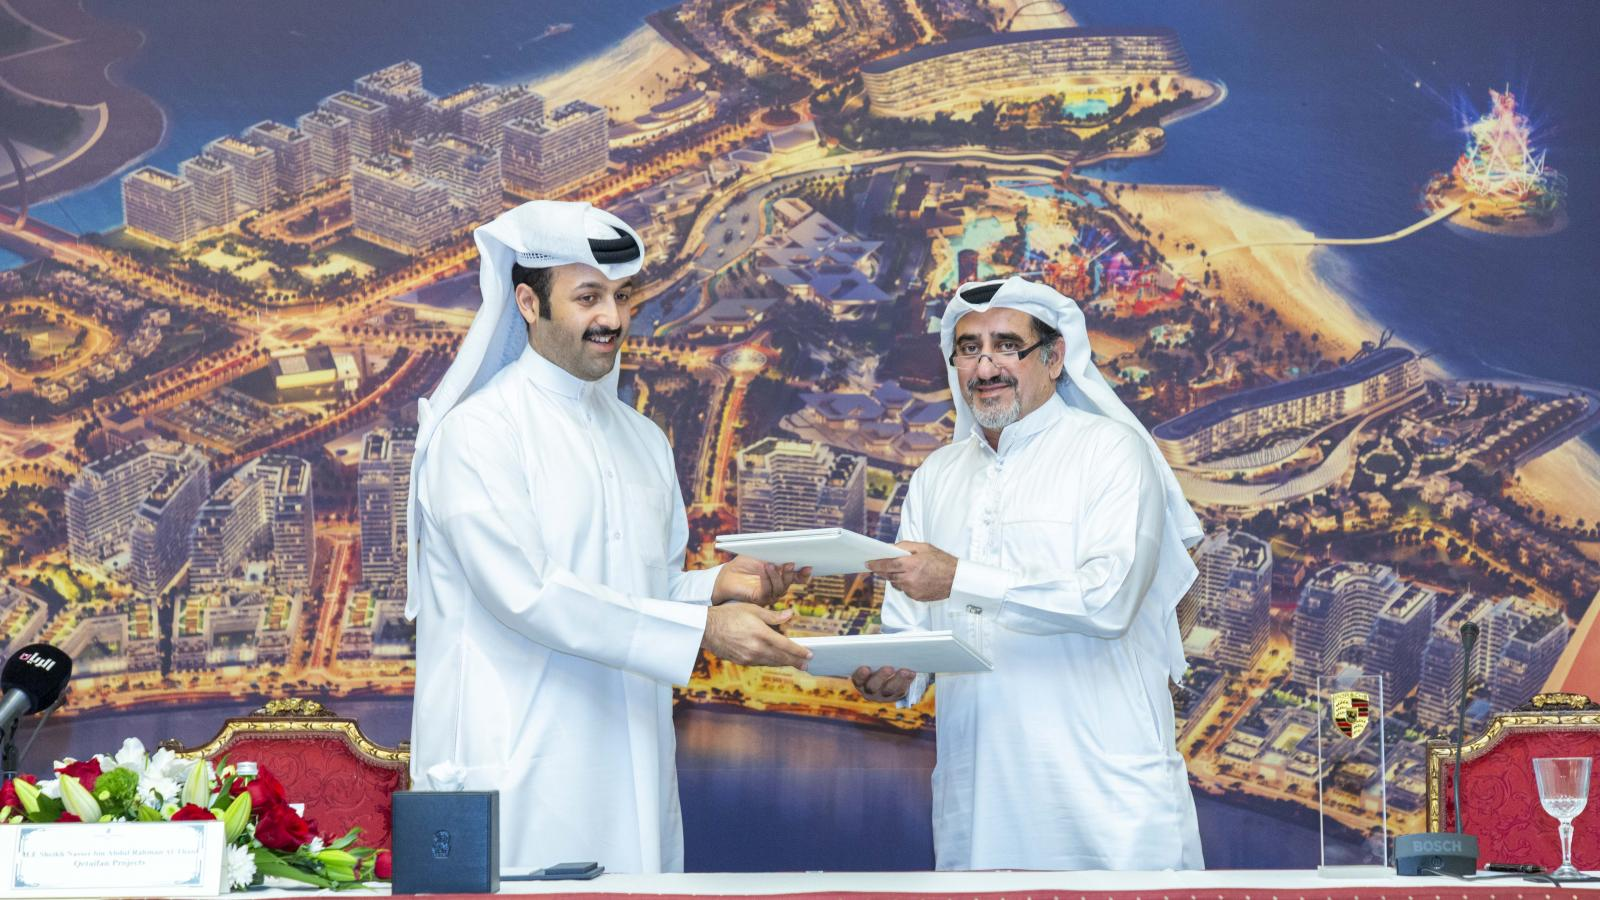 Qetaifan Island North launched the sales of second phase of residential villa plots